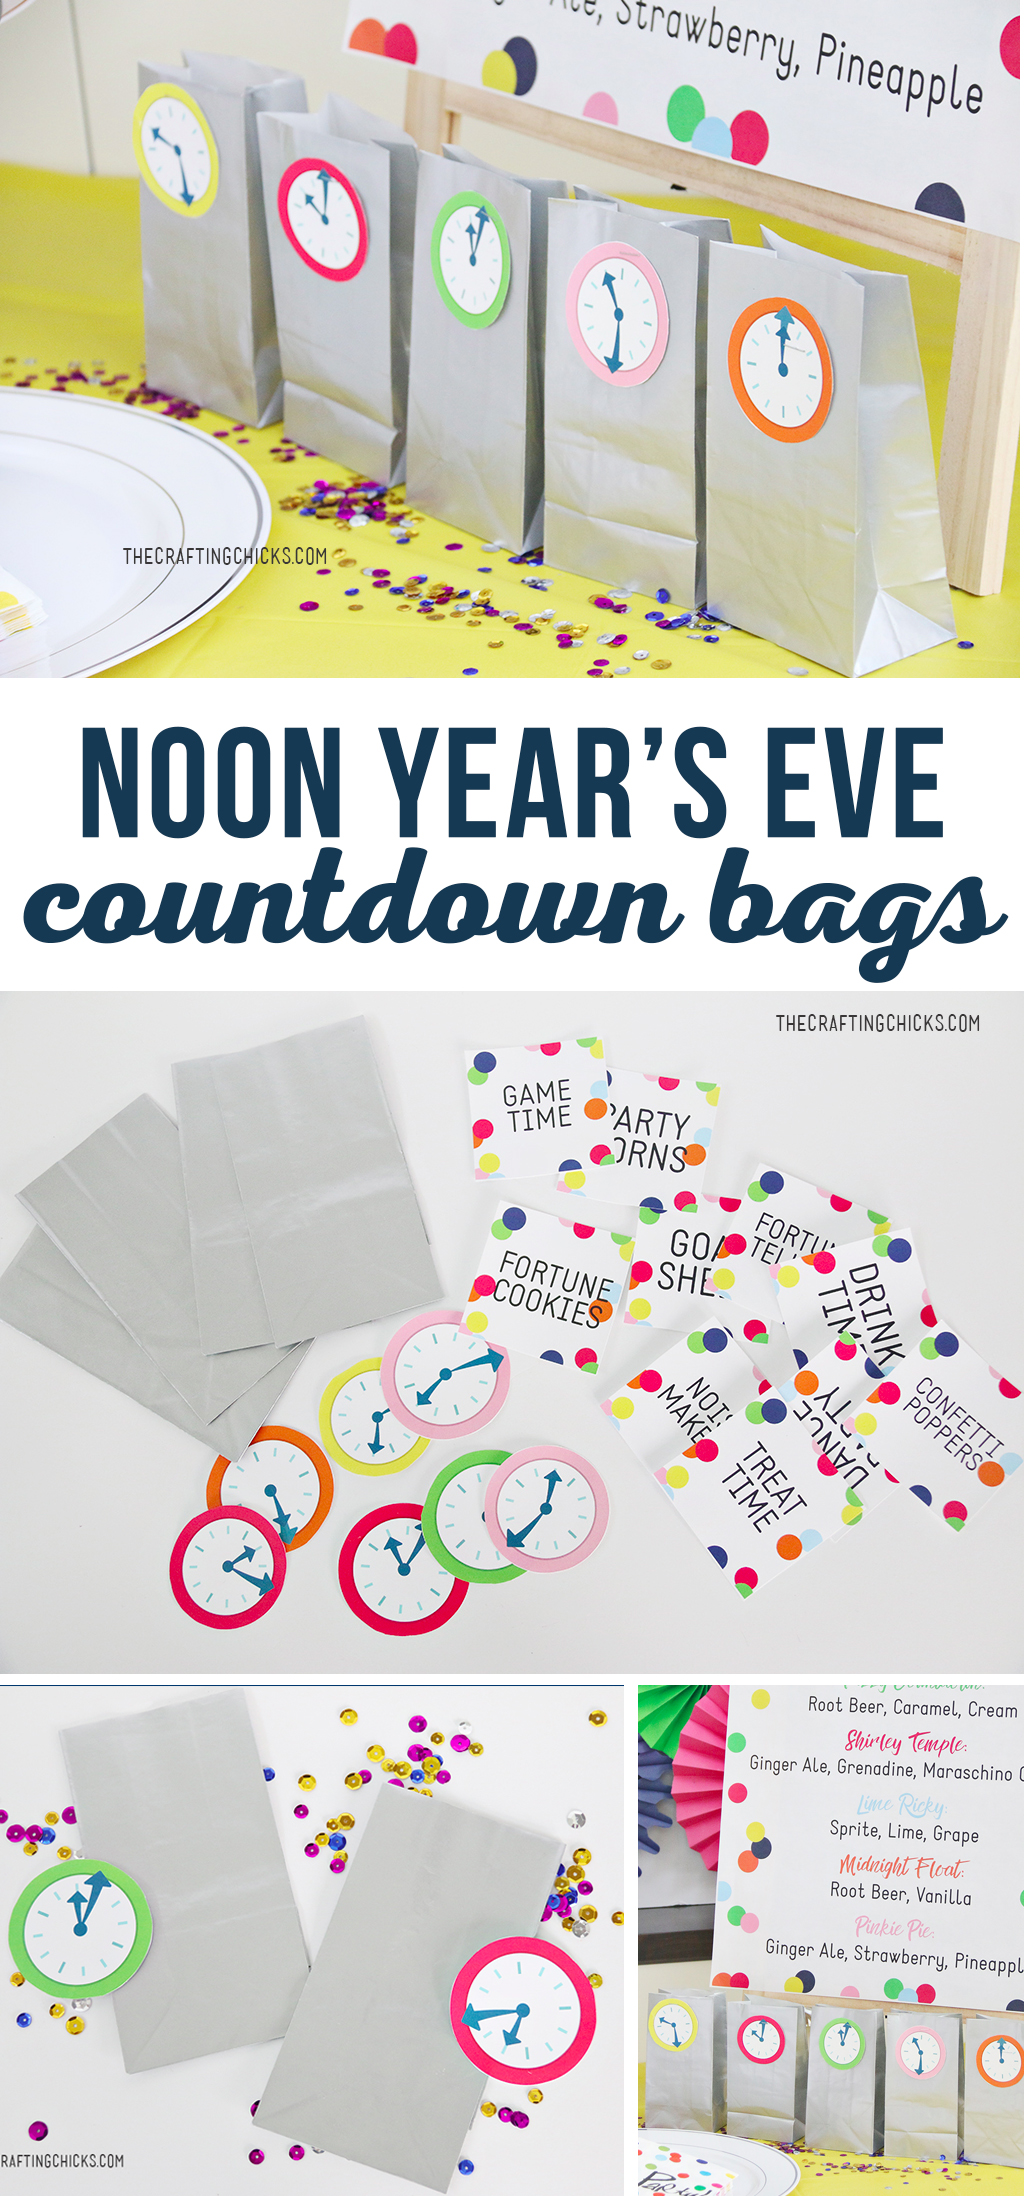 Noon Year's Eve Countdown Bags